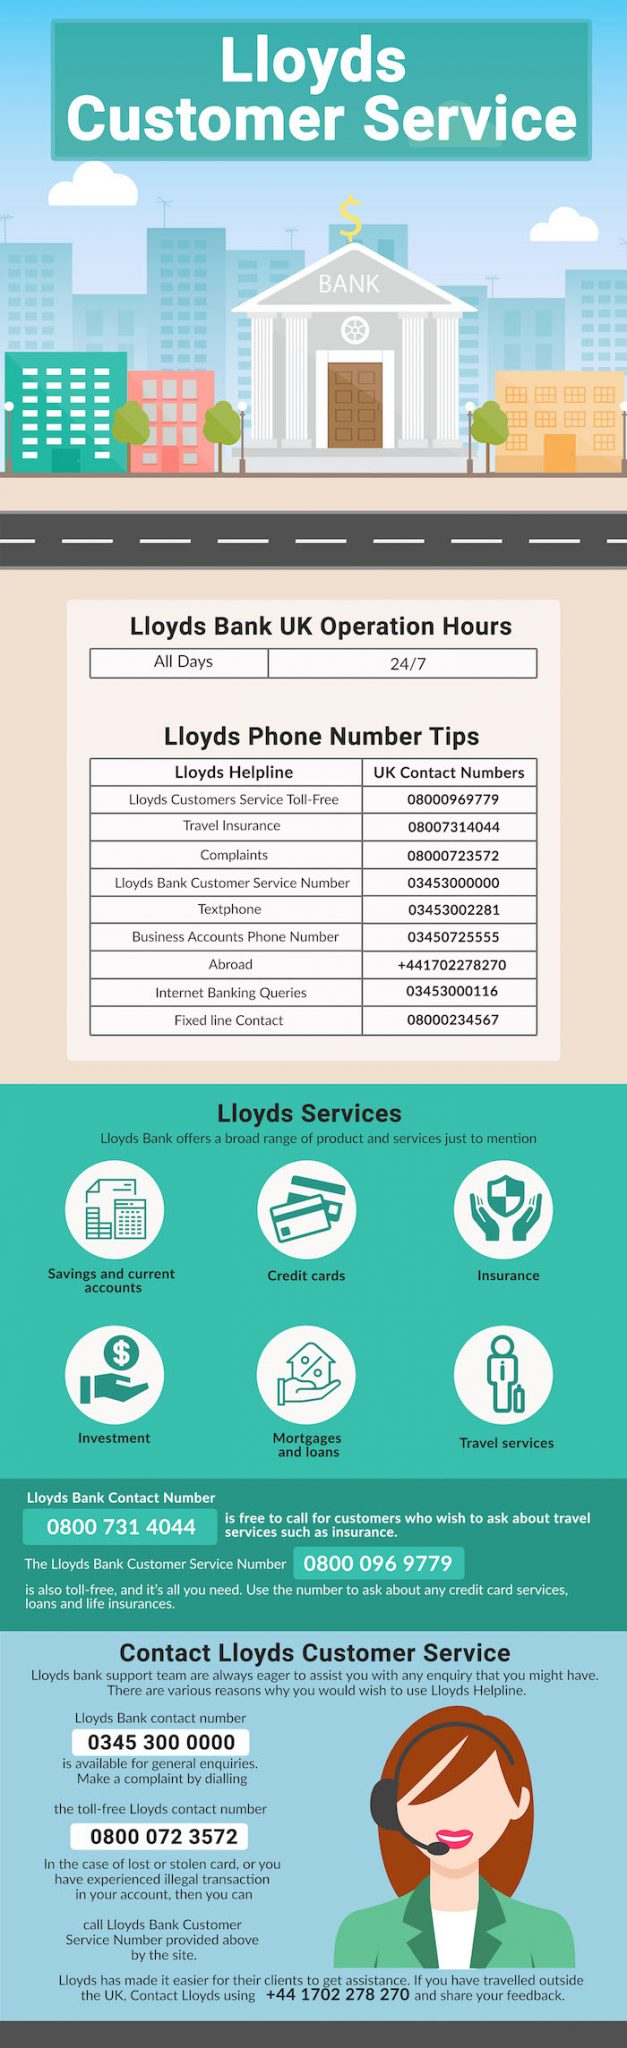 Lloyds Customer Care Numbers